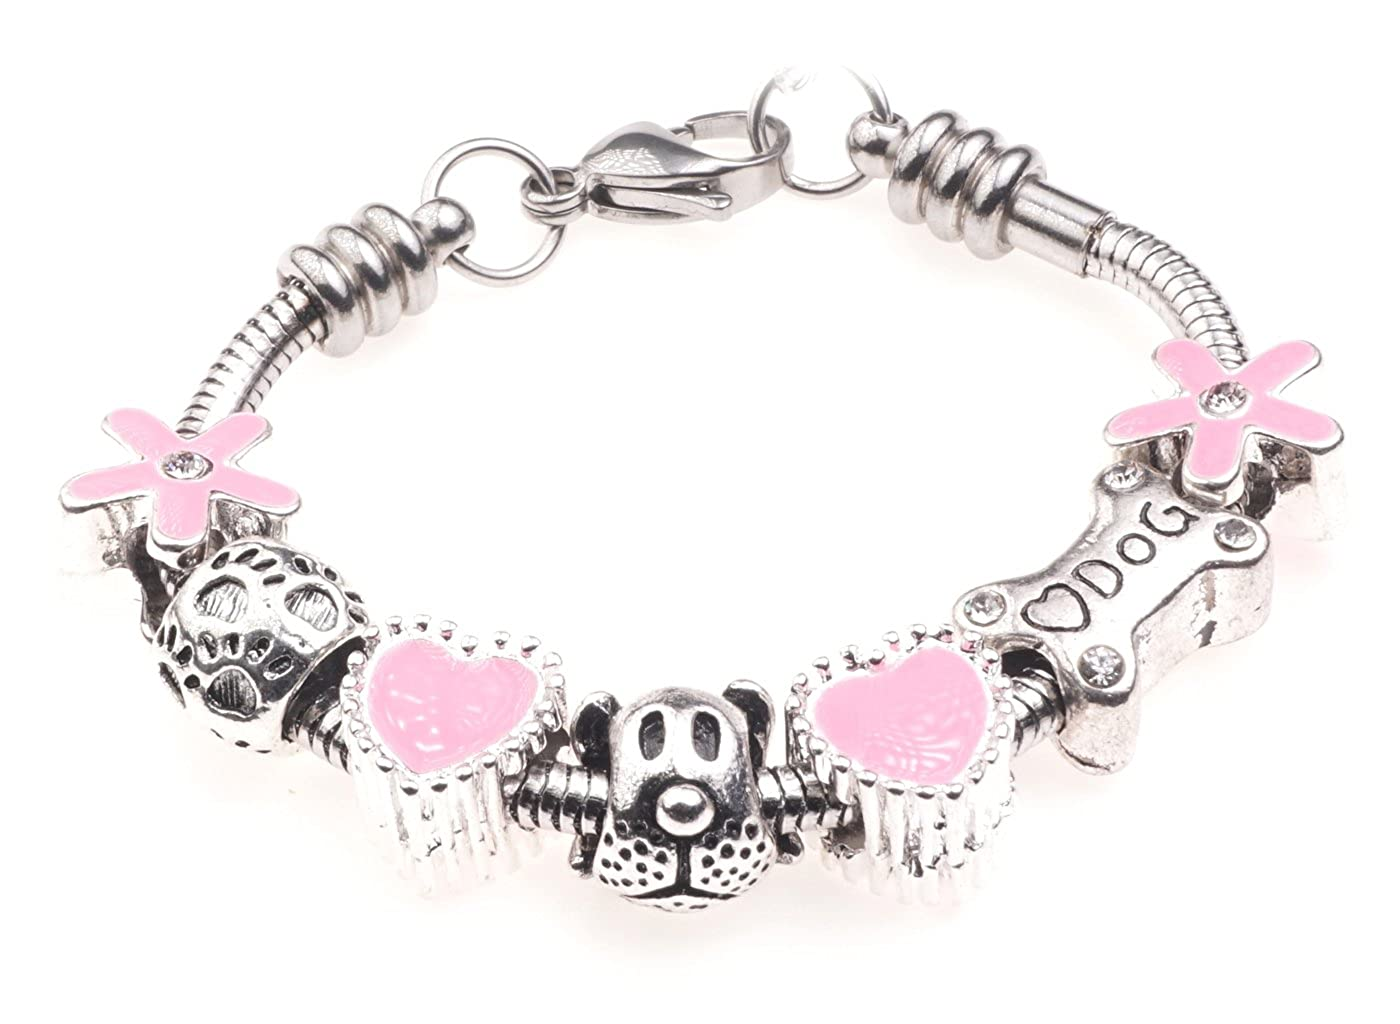 'I Love My Dog' Animal Pet Themed Childrens Charm Bracelet with Gift Box Girls Jewellery Jewellery Hut BRkidsDog